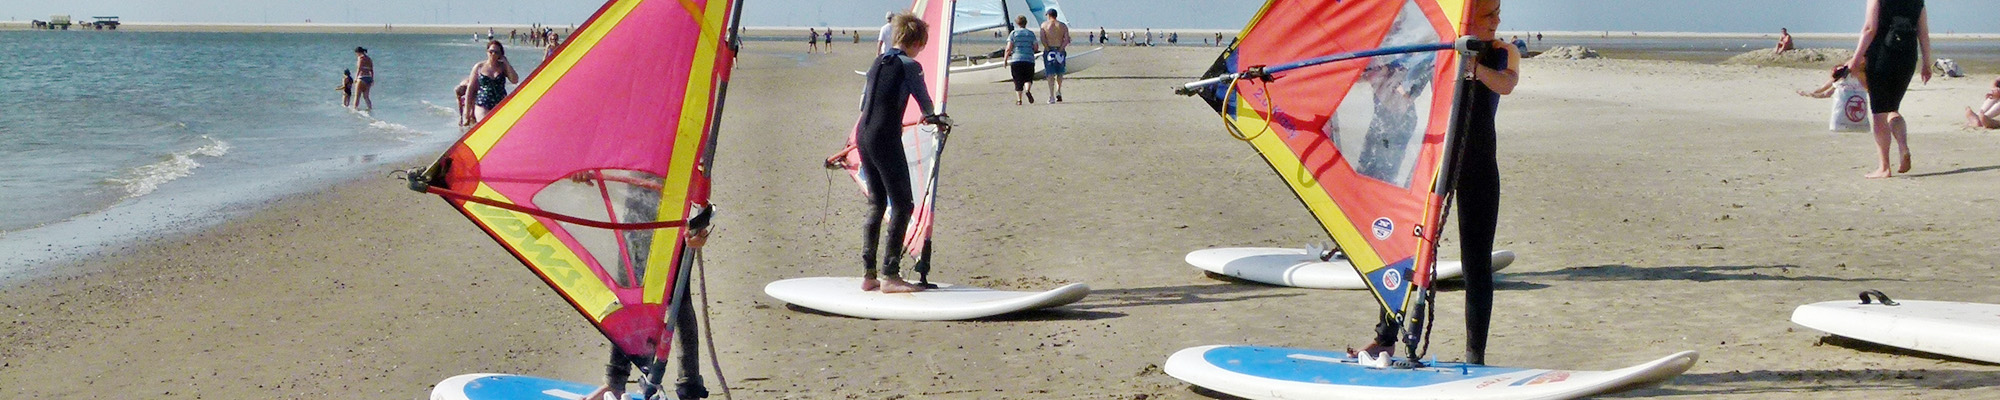 Windsurfen in Dornumersiel